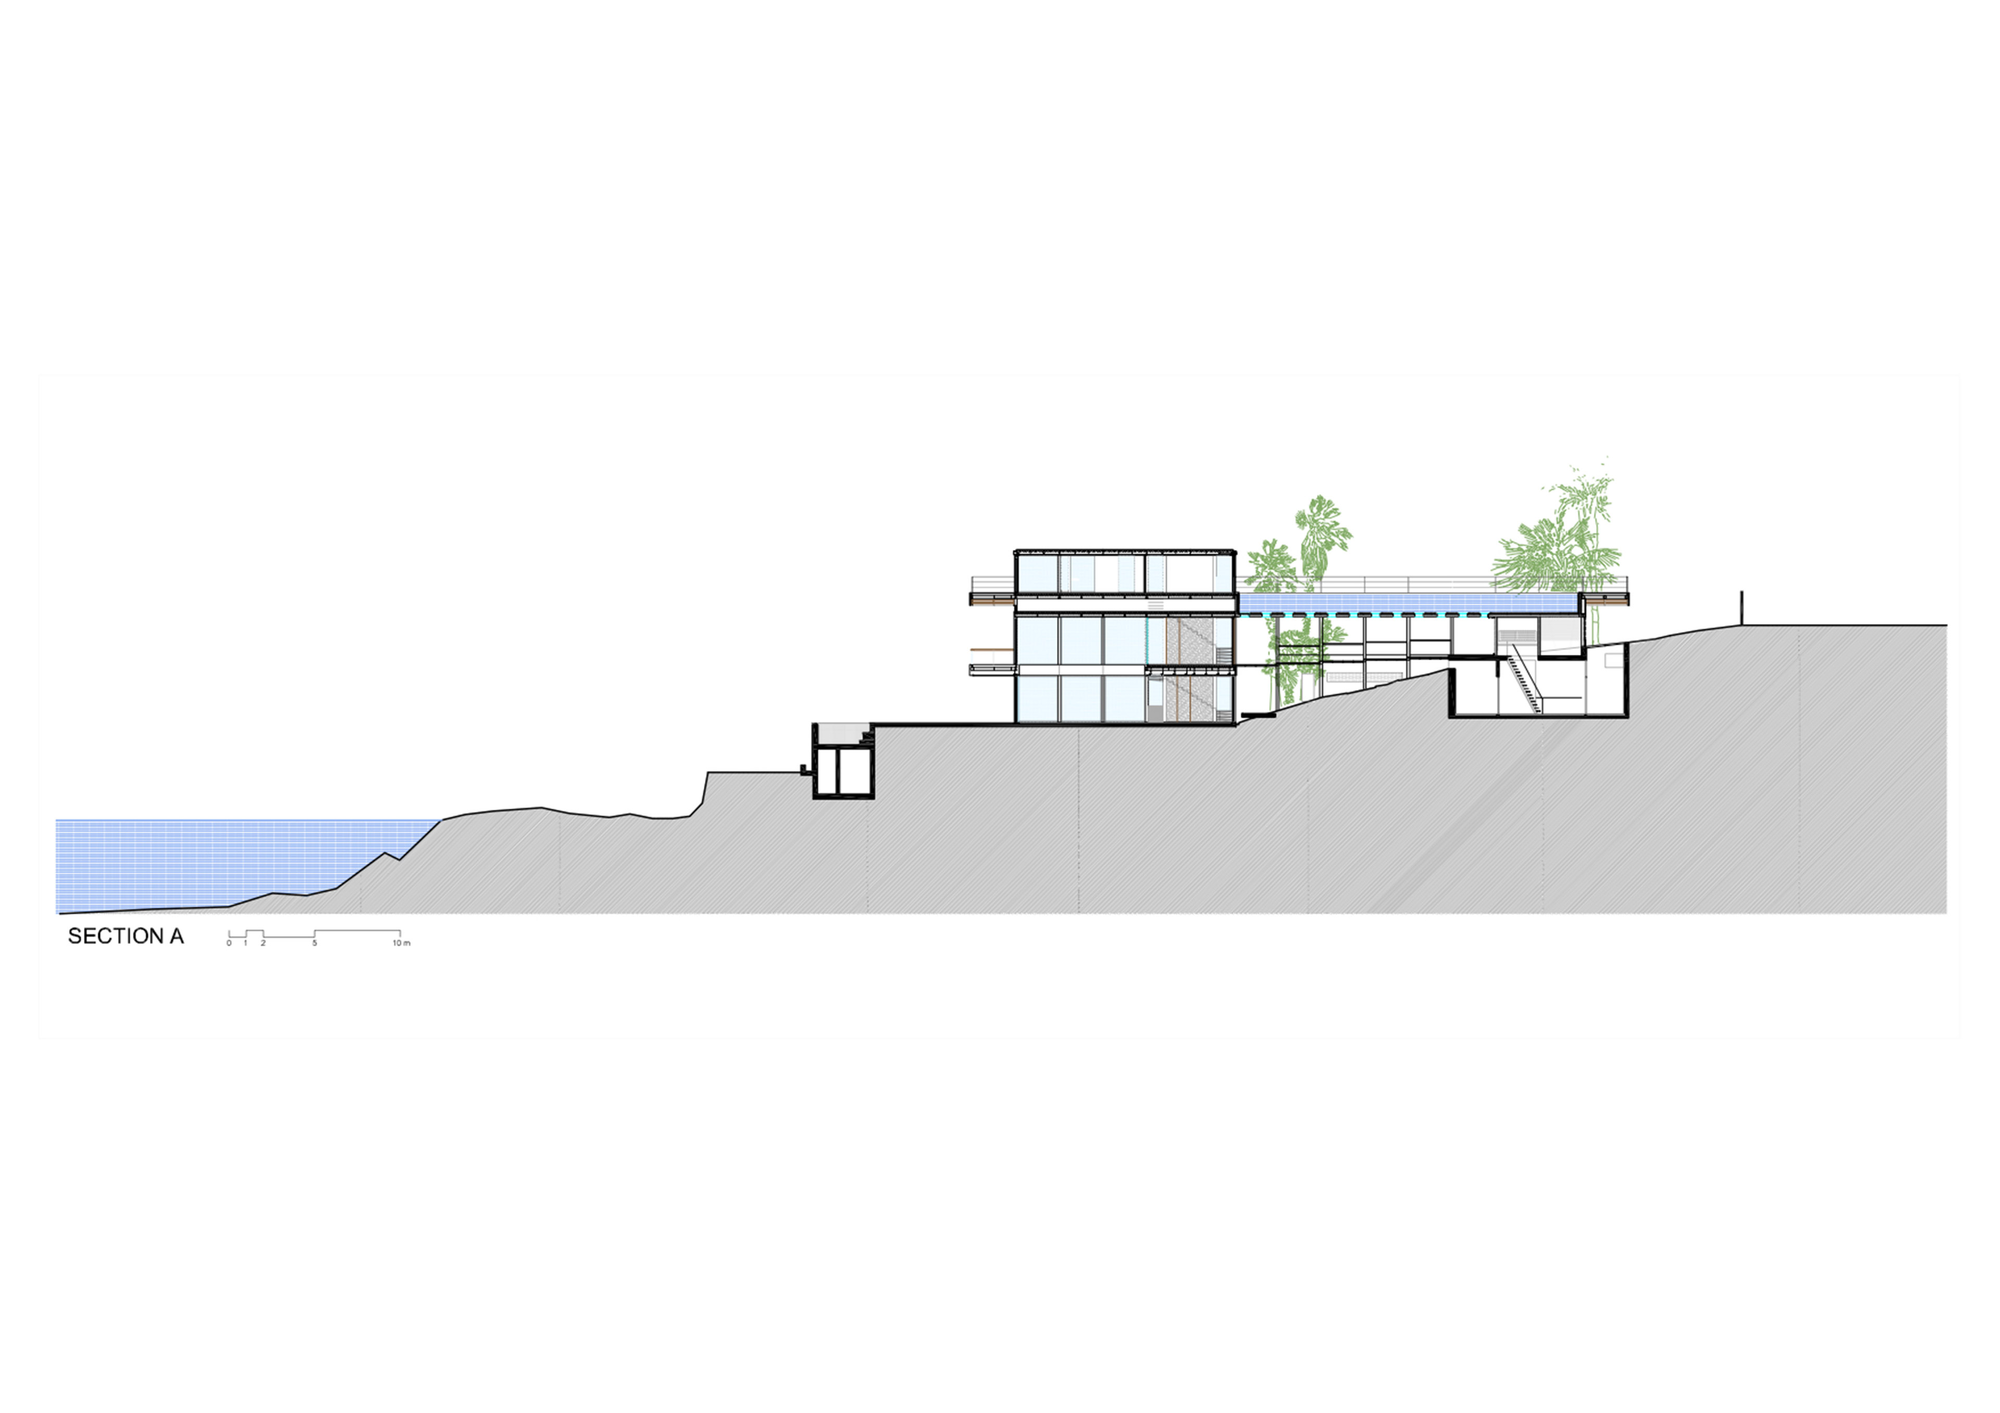 Amchit_Residence-Blankpage_Architects-27.png